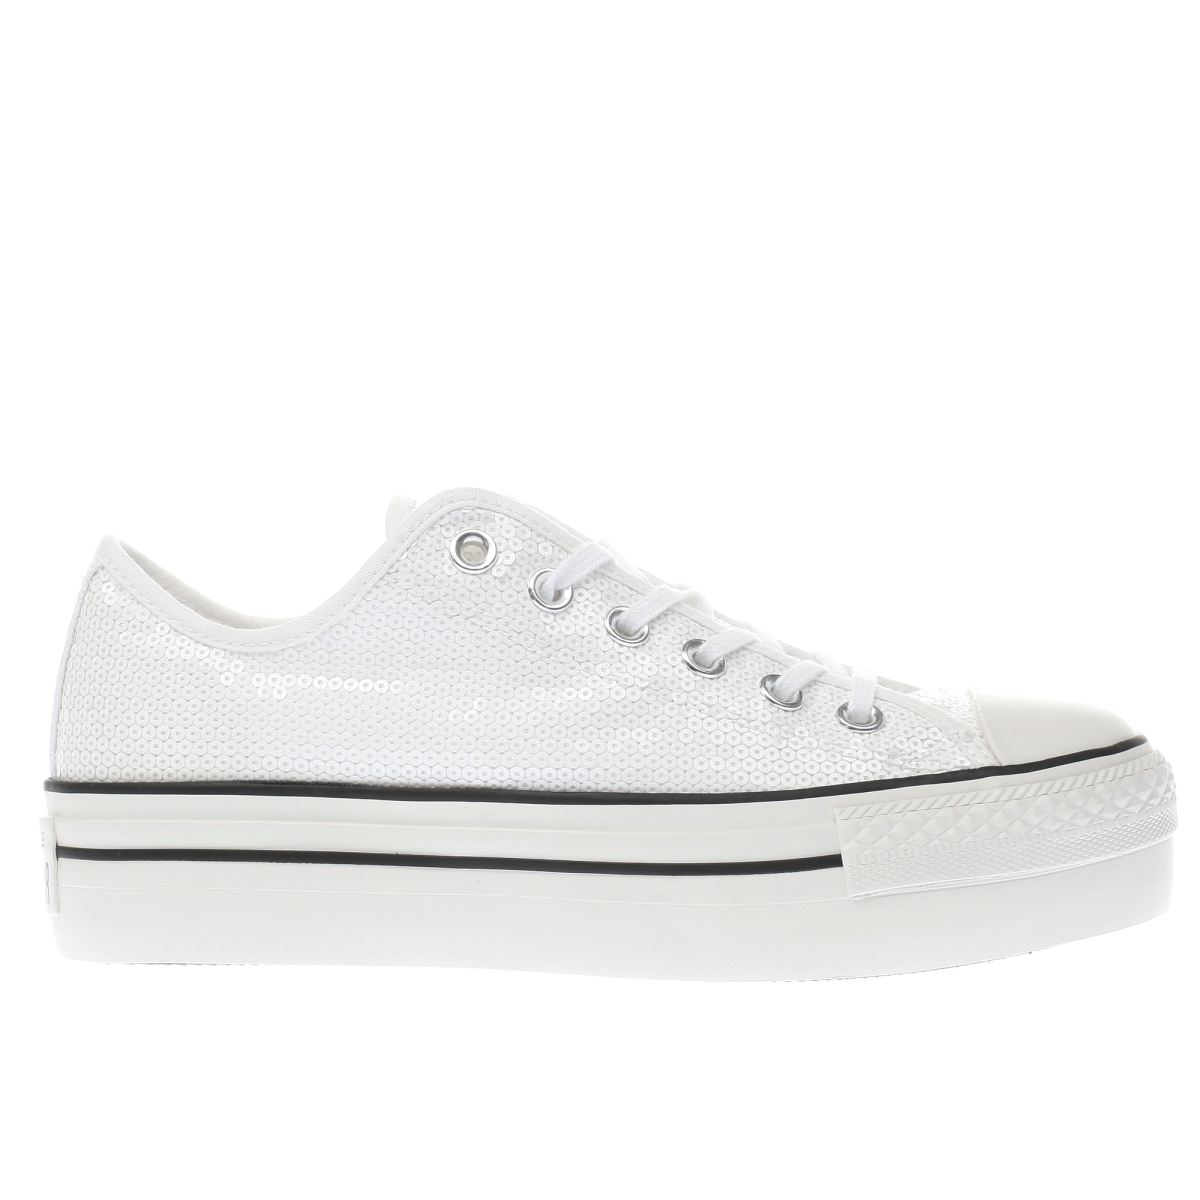 converse white & black all star platform ox trainers